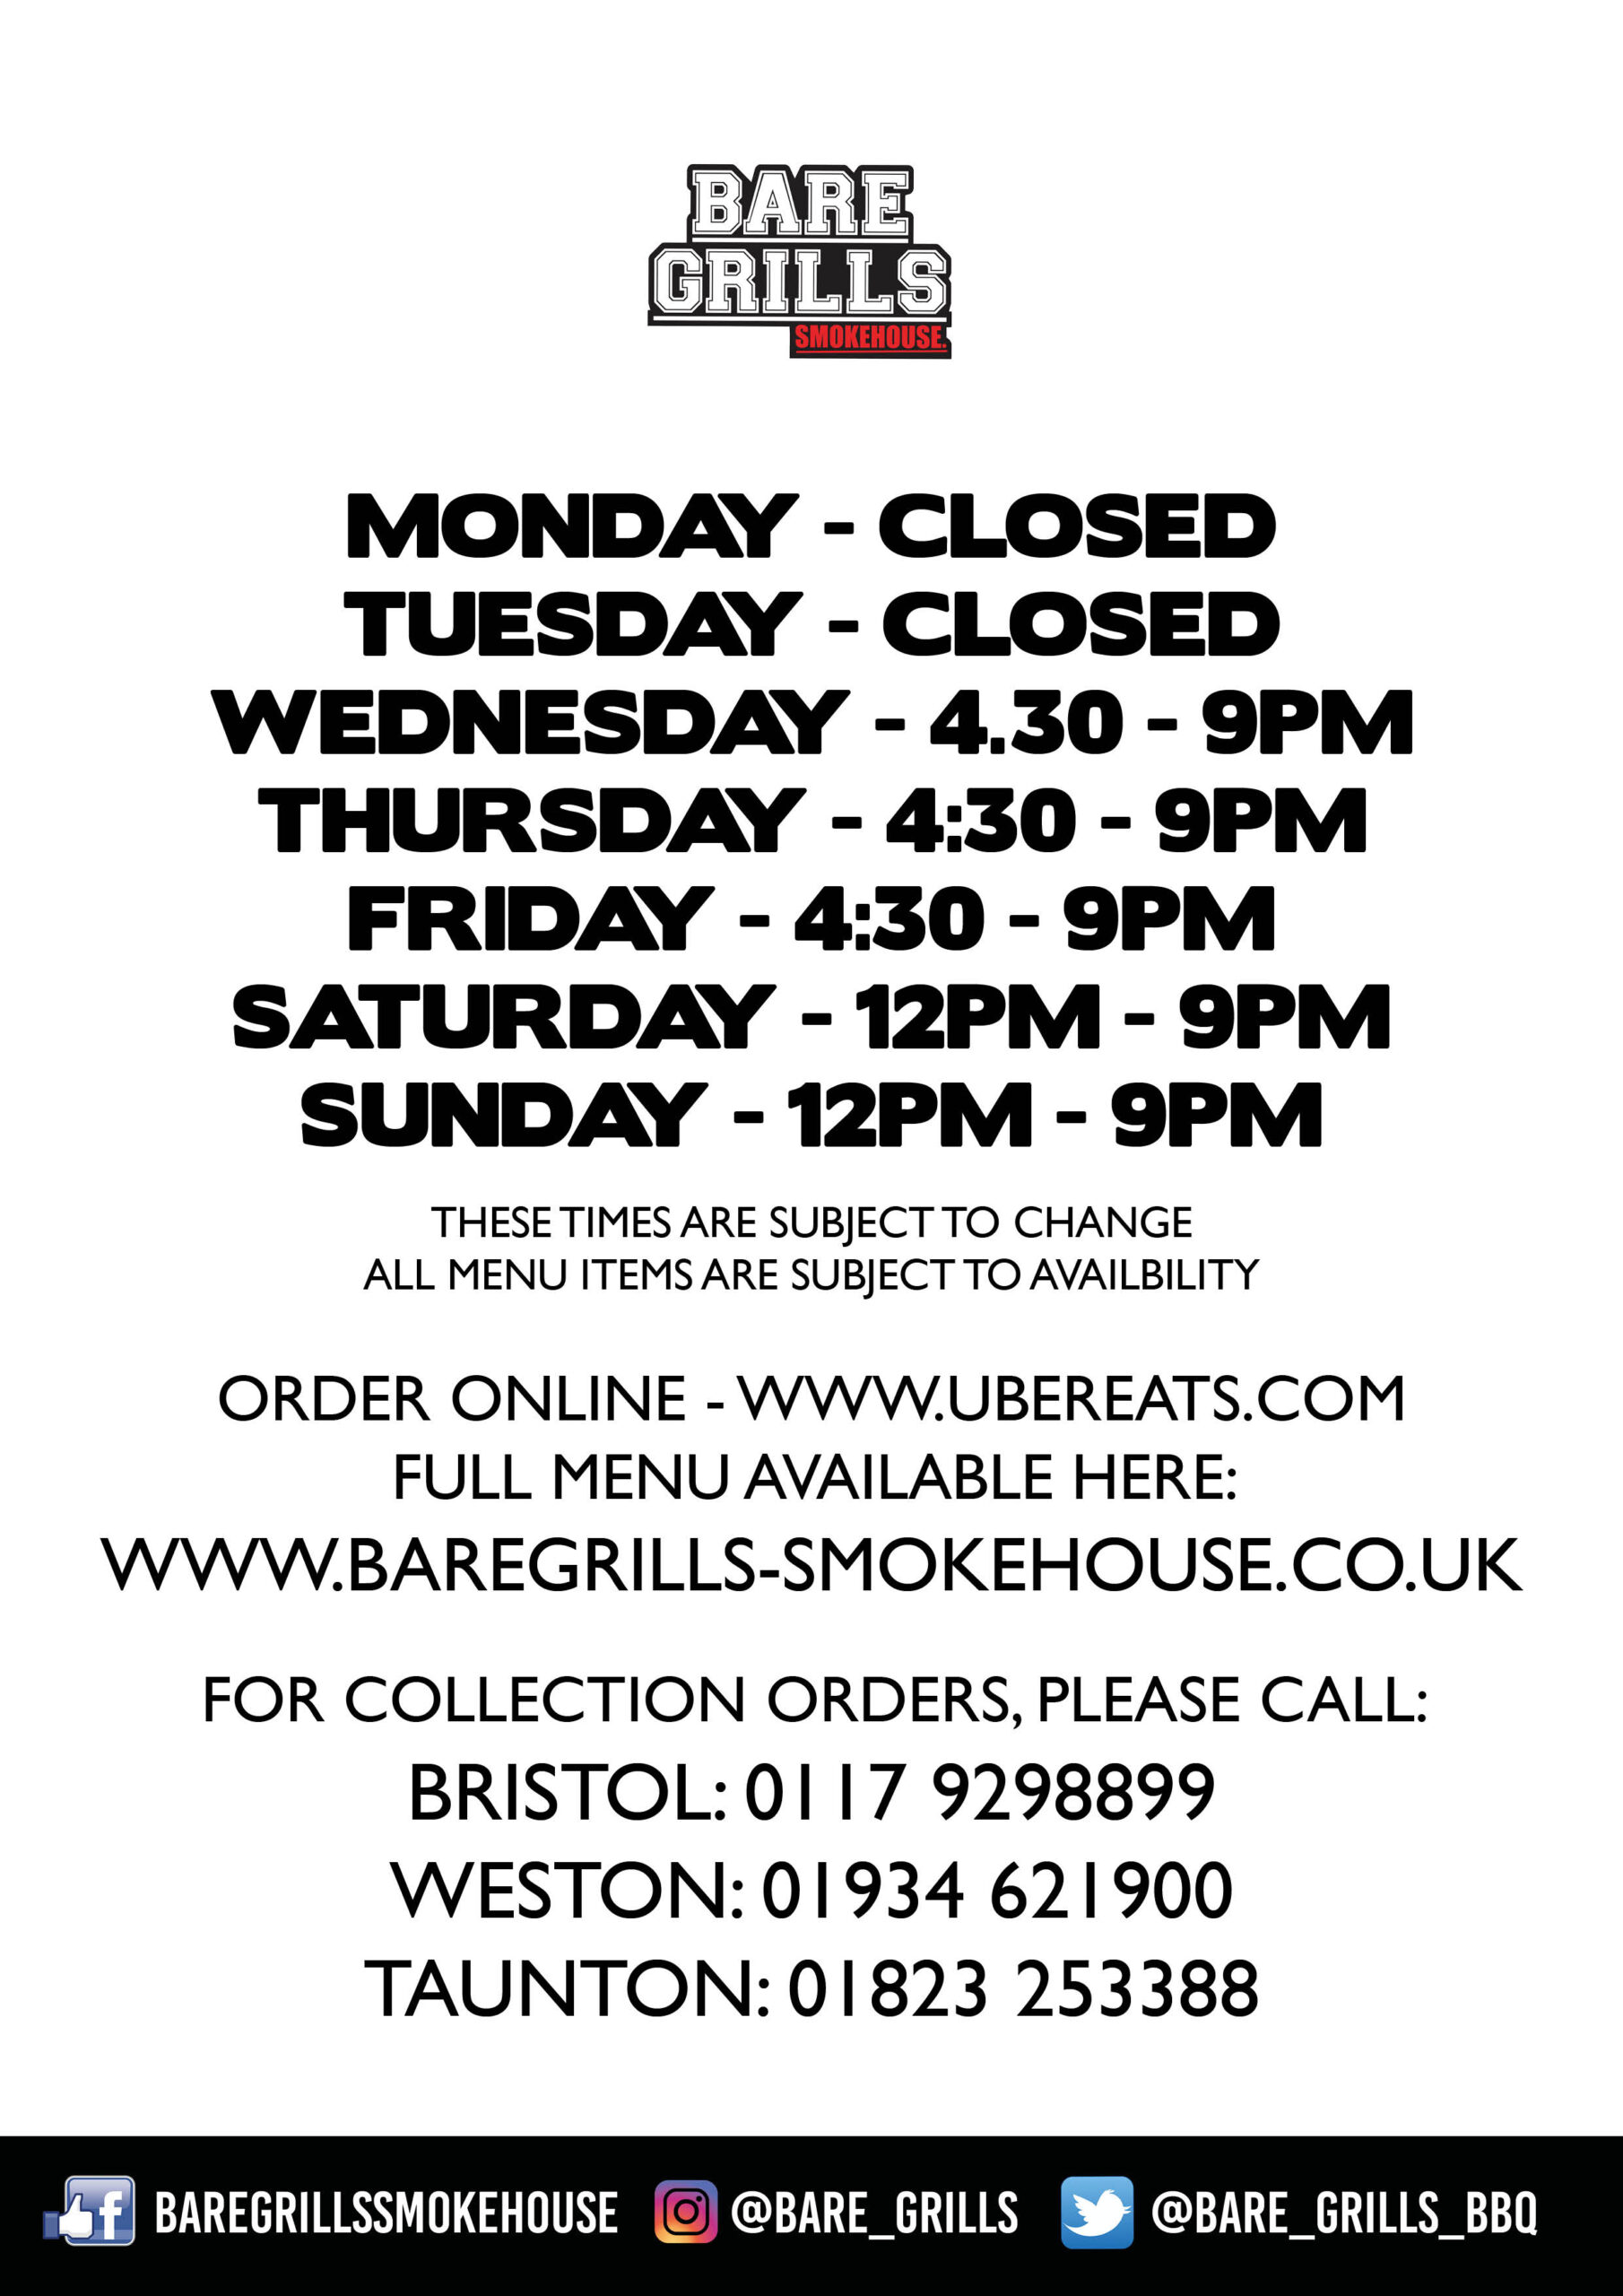 GENERIC OPENING HOURS